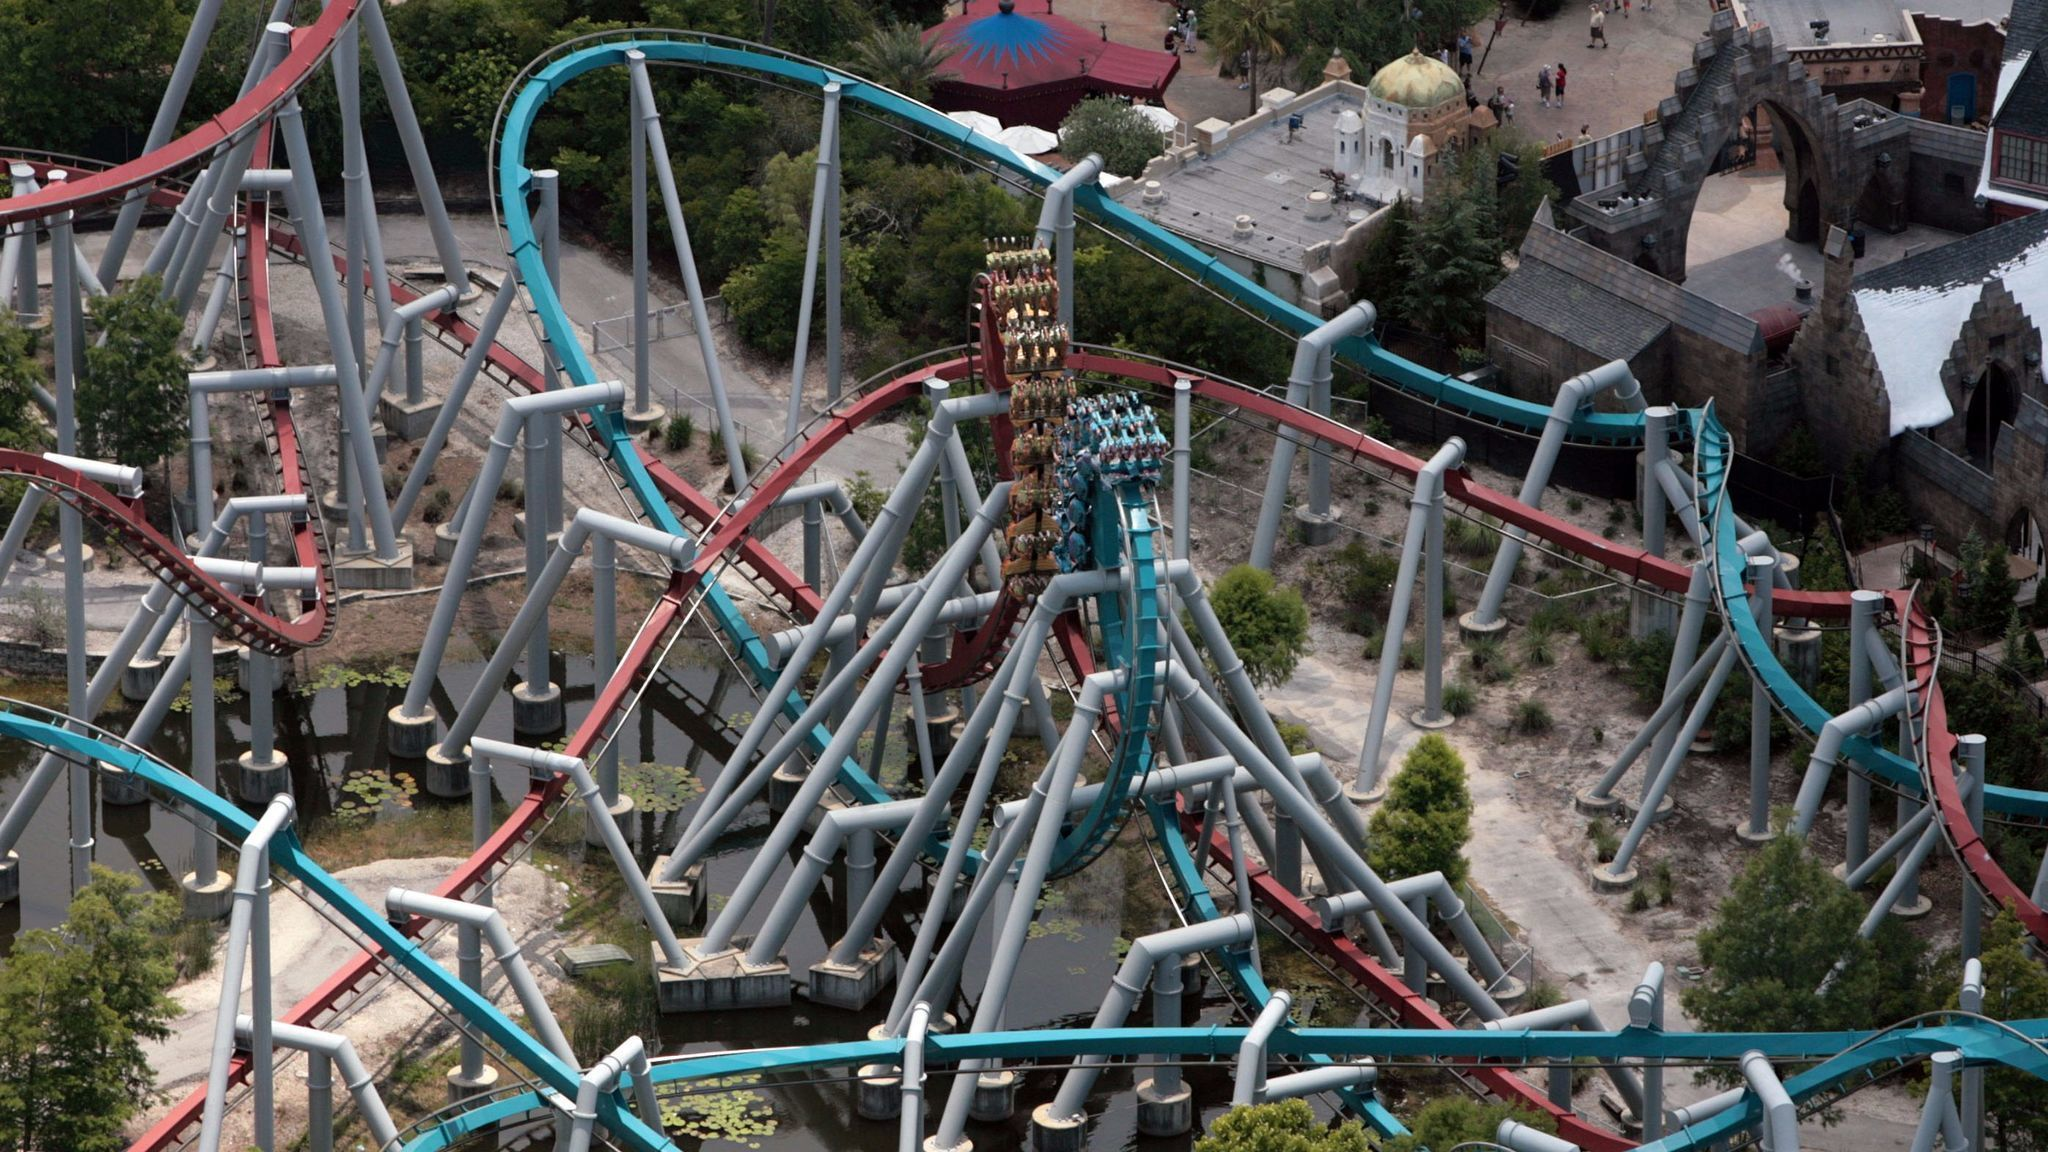 Dueling dragons coaster, Universal Studios